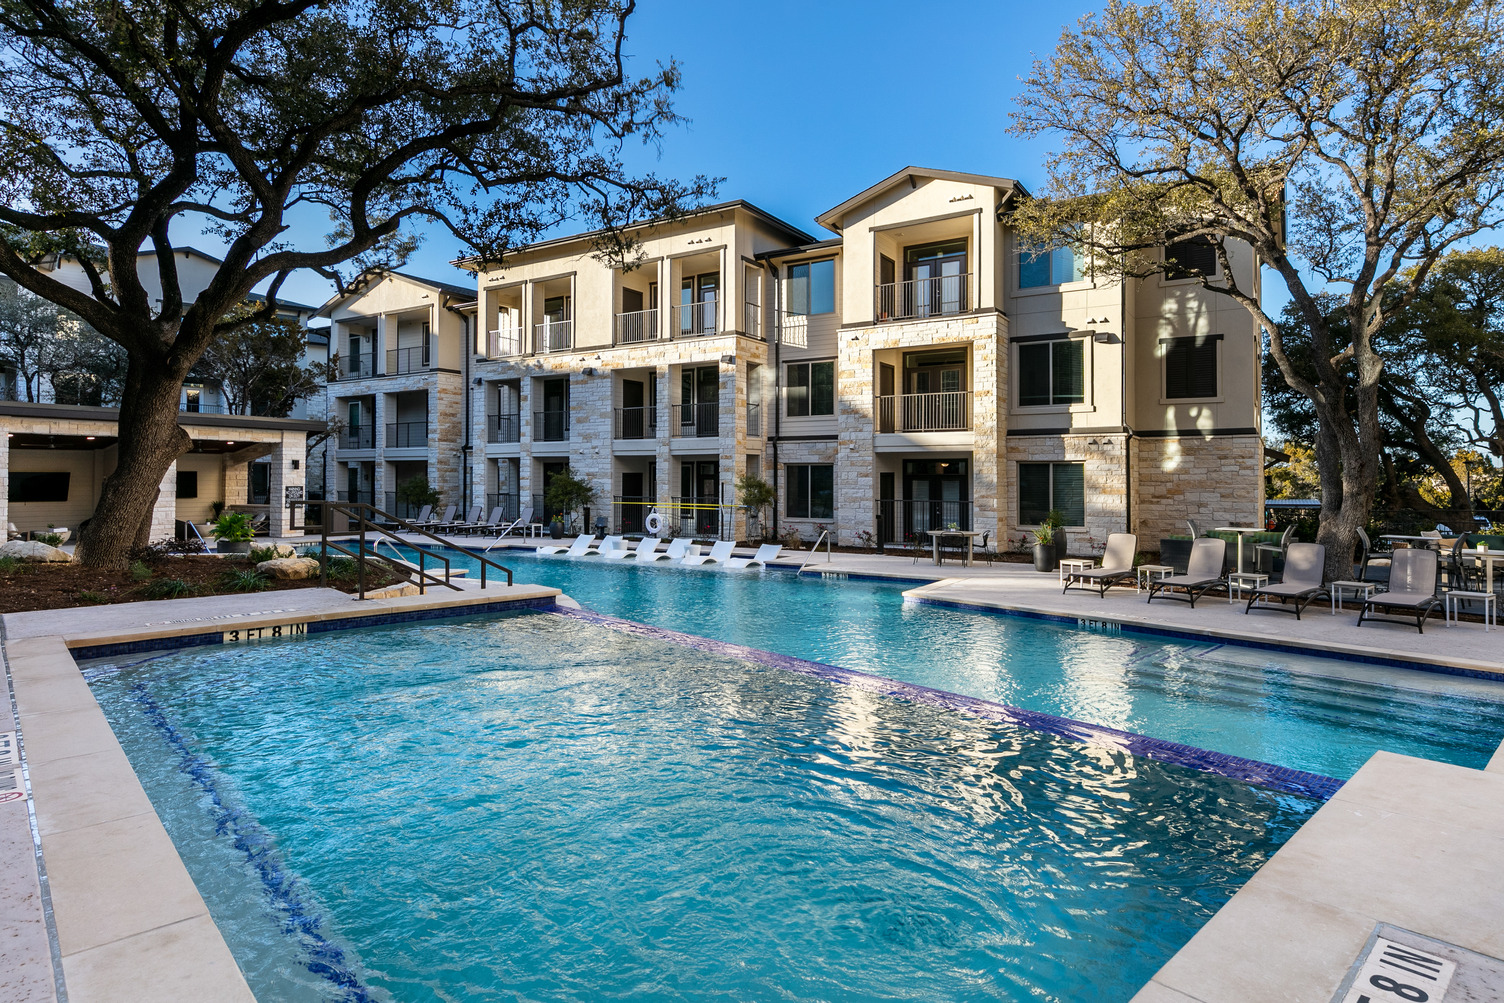 Resort-style pool courtyard with seating throughout and landscaping